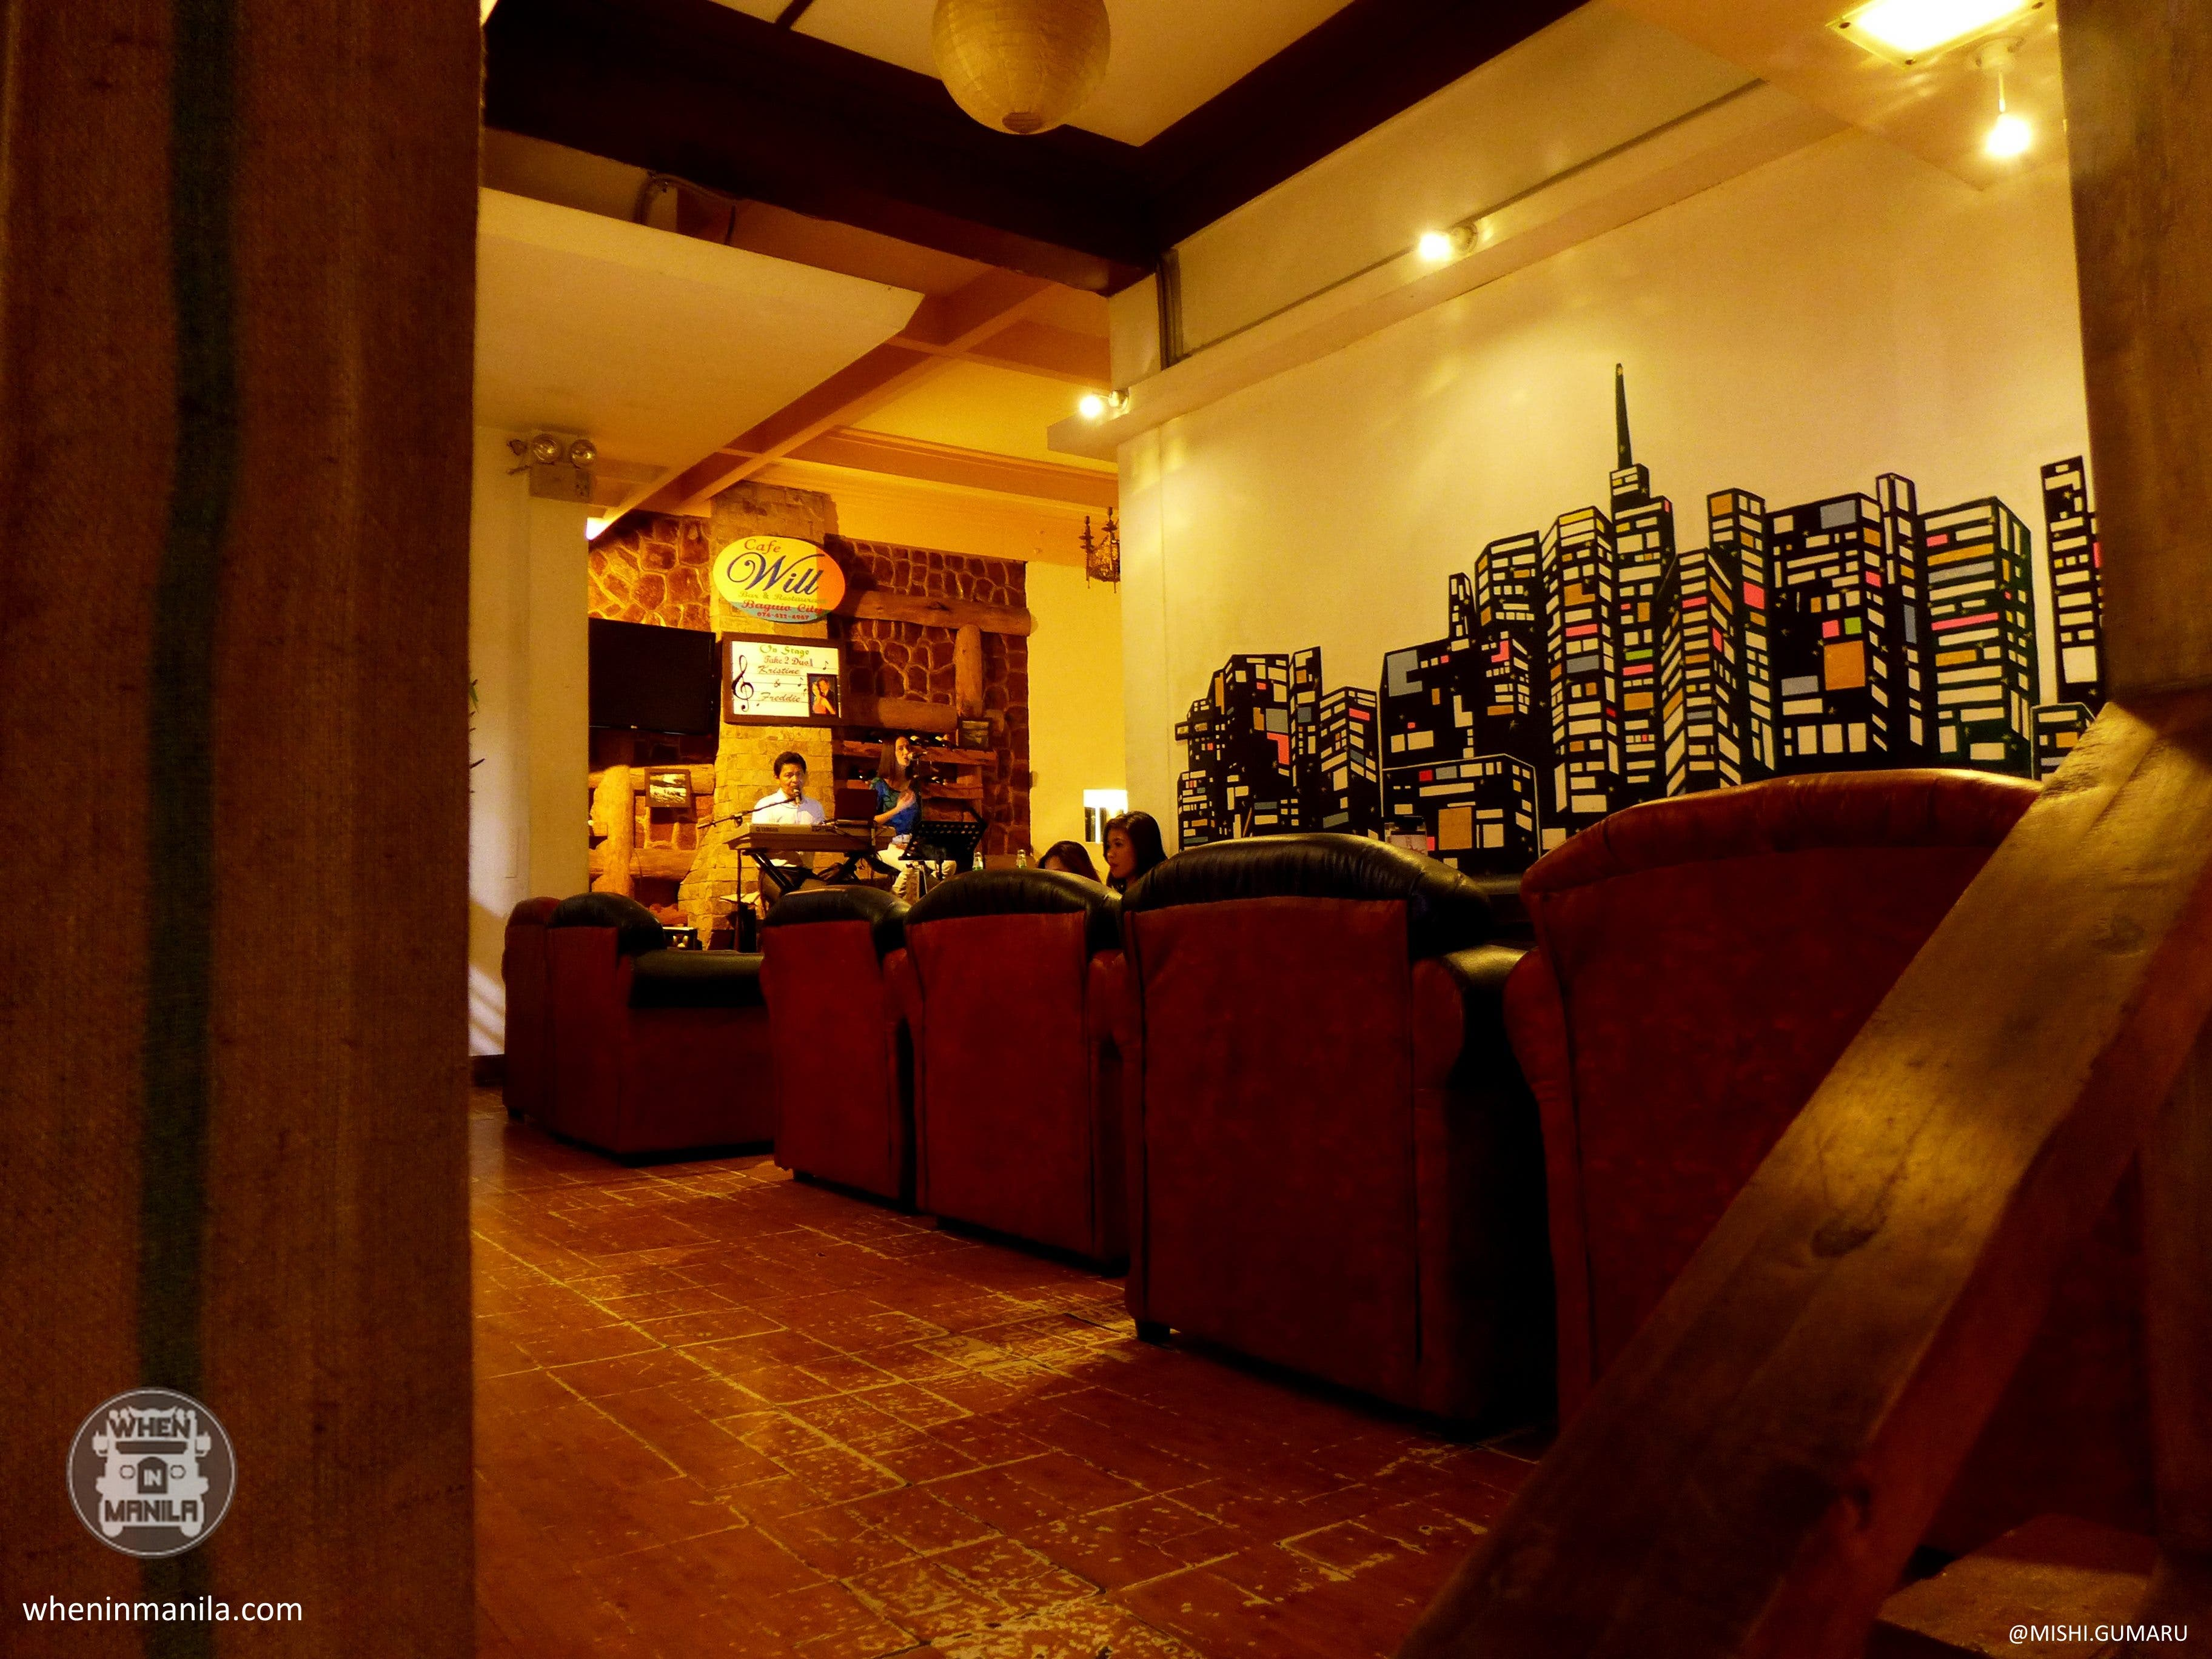 5-Cool-And-Quirky-Cafes-You-Must-Check-Out-When-In-Baguio15